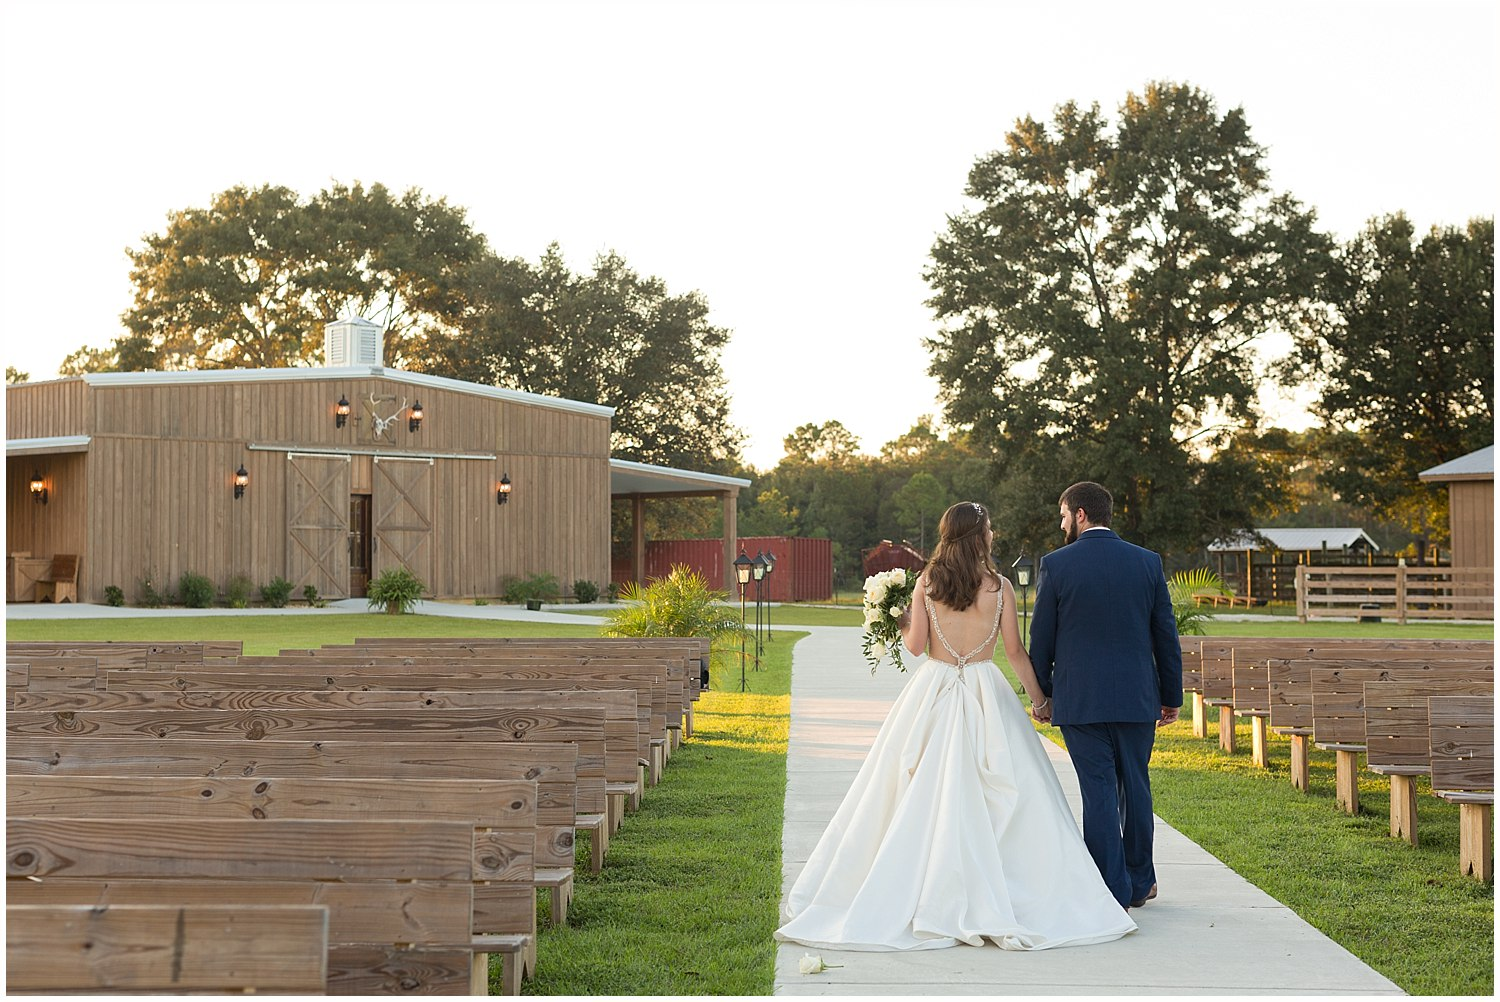 wedding ceremony site at The Barn at Love Farms